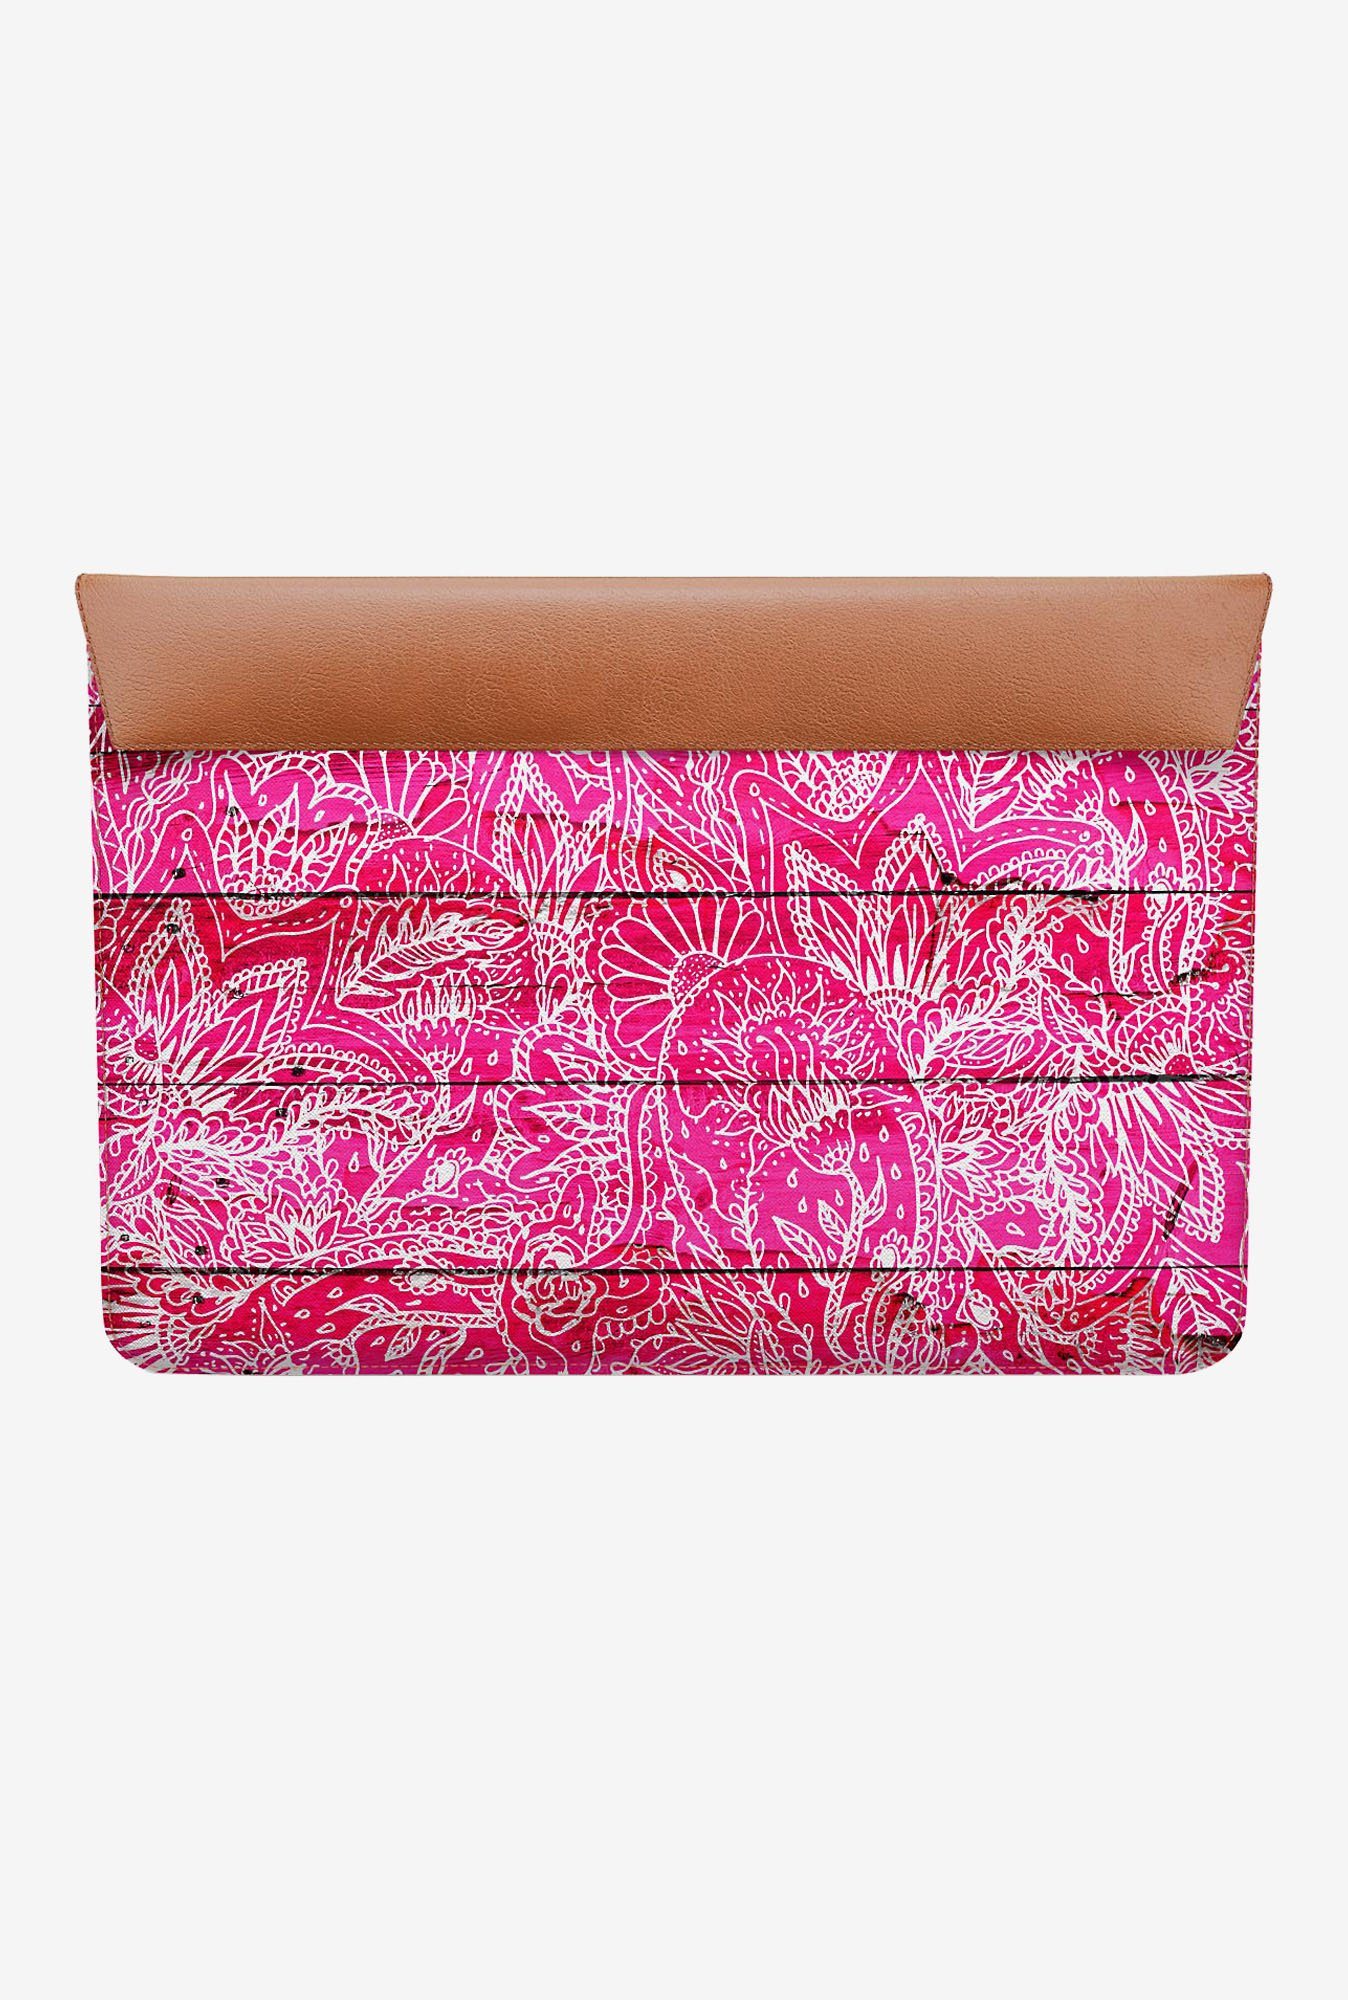 DailyObjects Floral Paisley MacBook Pro 15 Envelope Sleeve